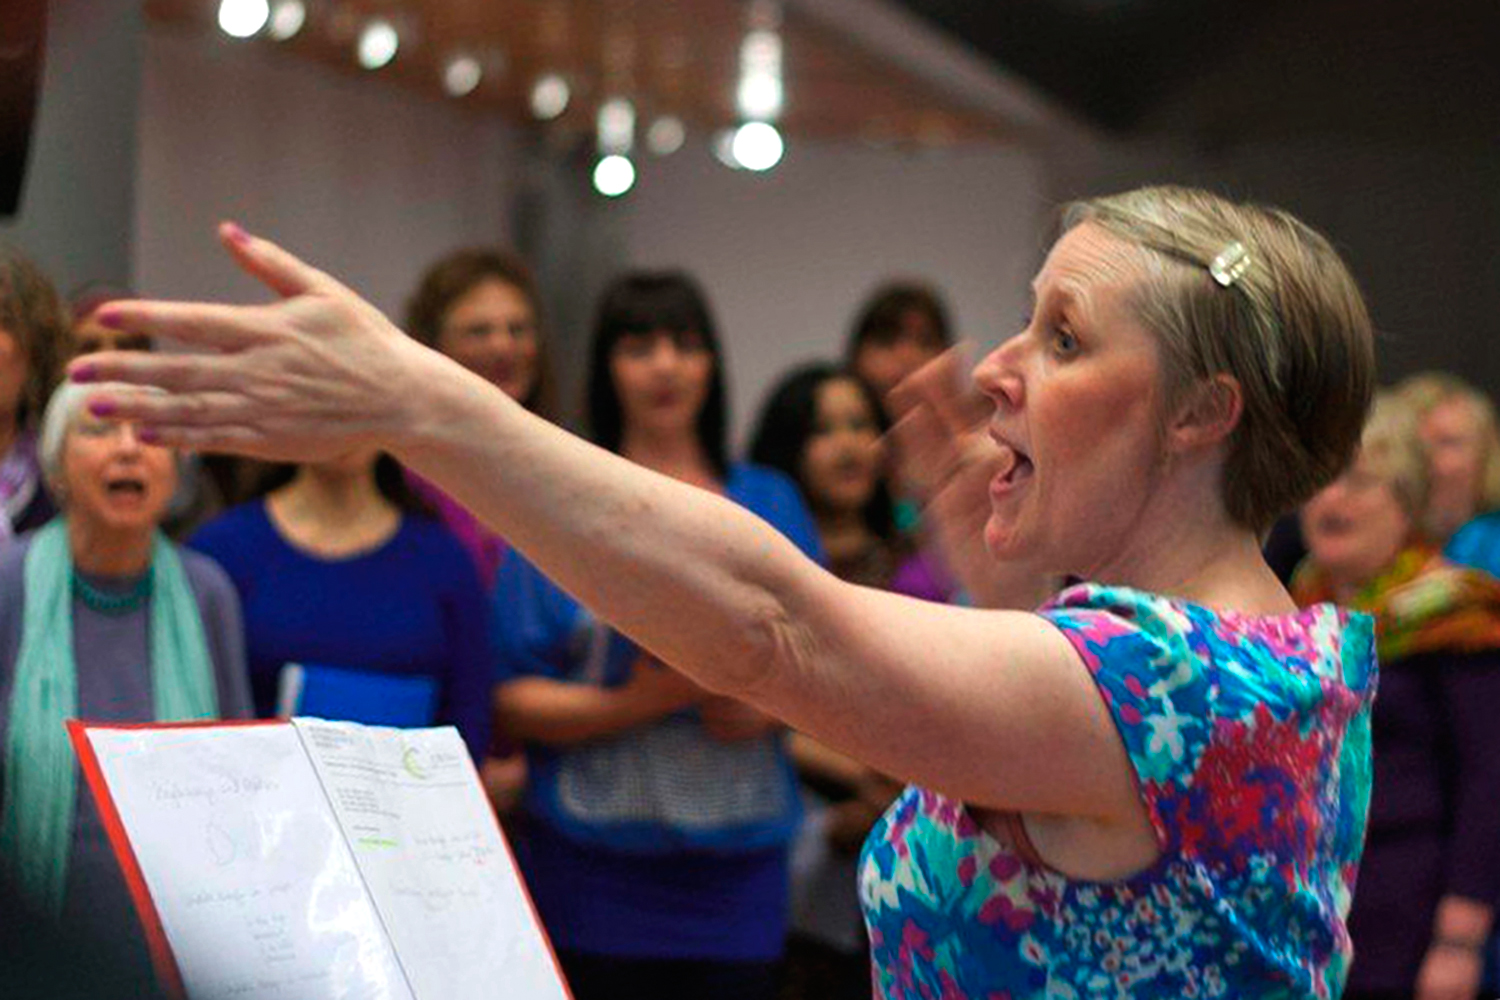 Beth Allen leading the choir through the performance at the MIF13 Volunteers launch event Photo: Robert Martin for Manchester International Festival